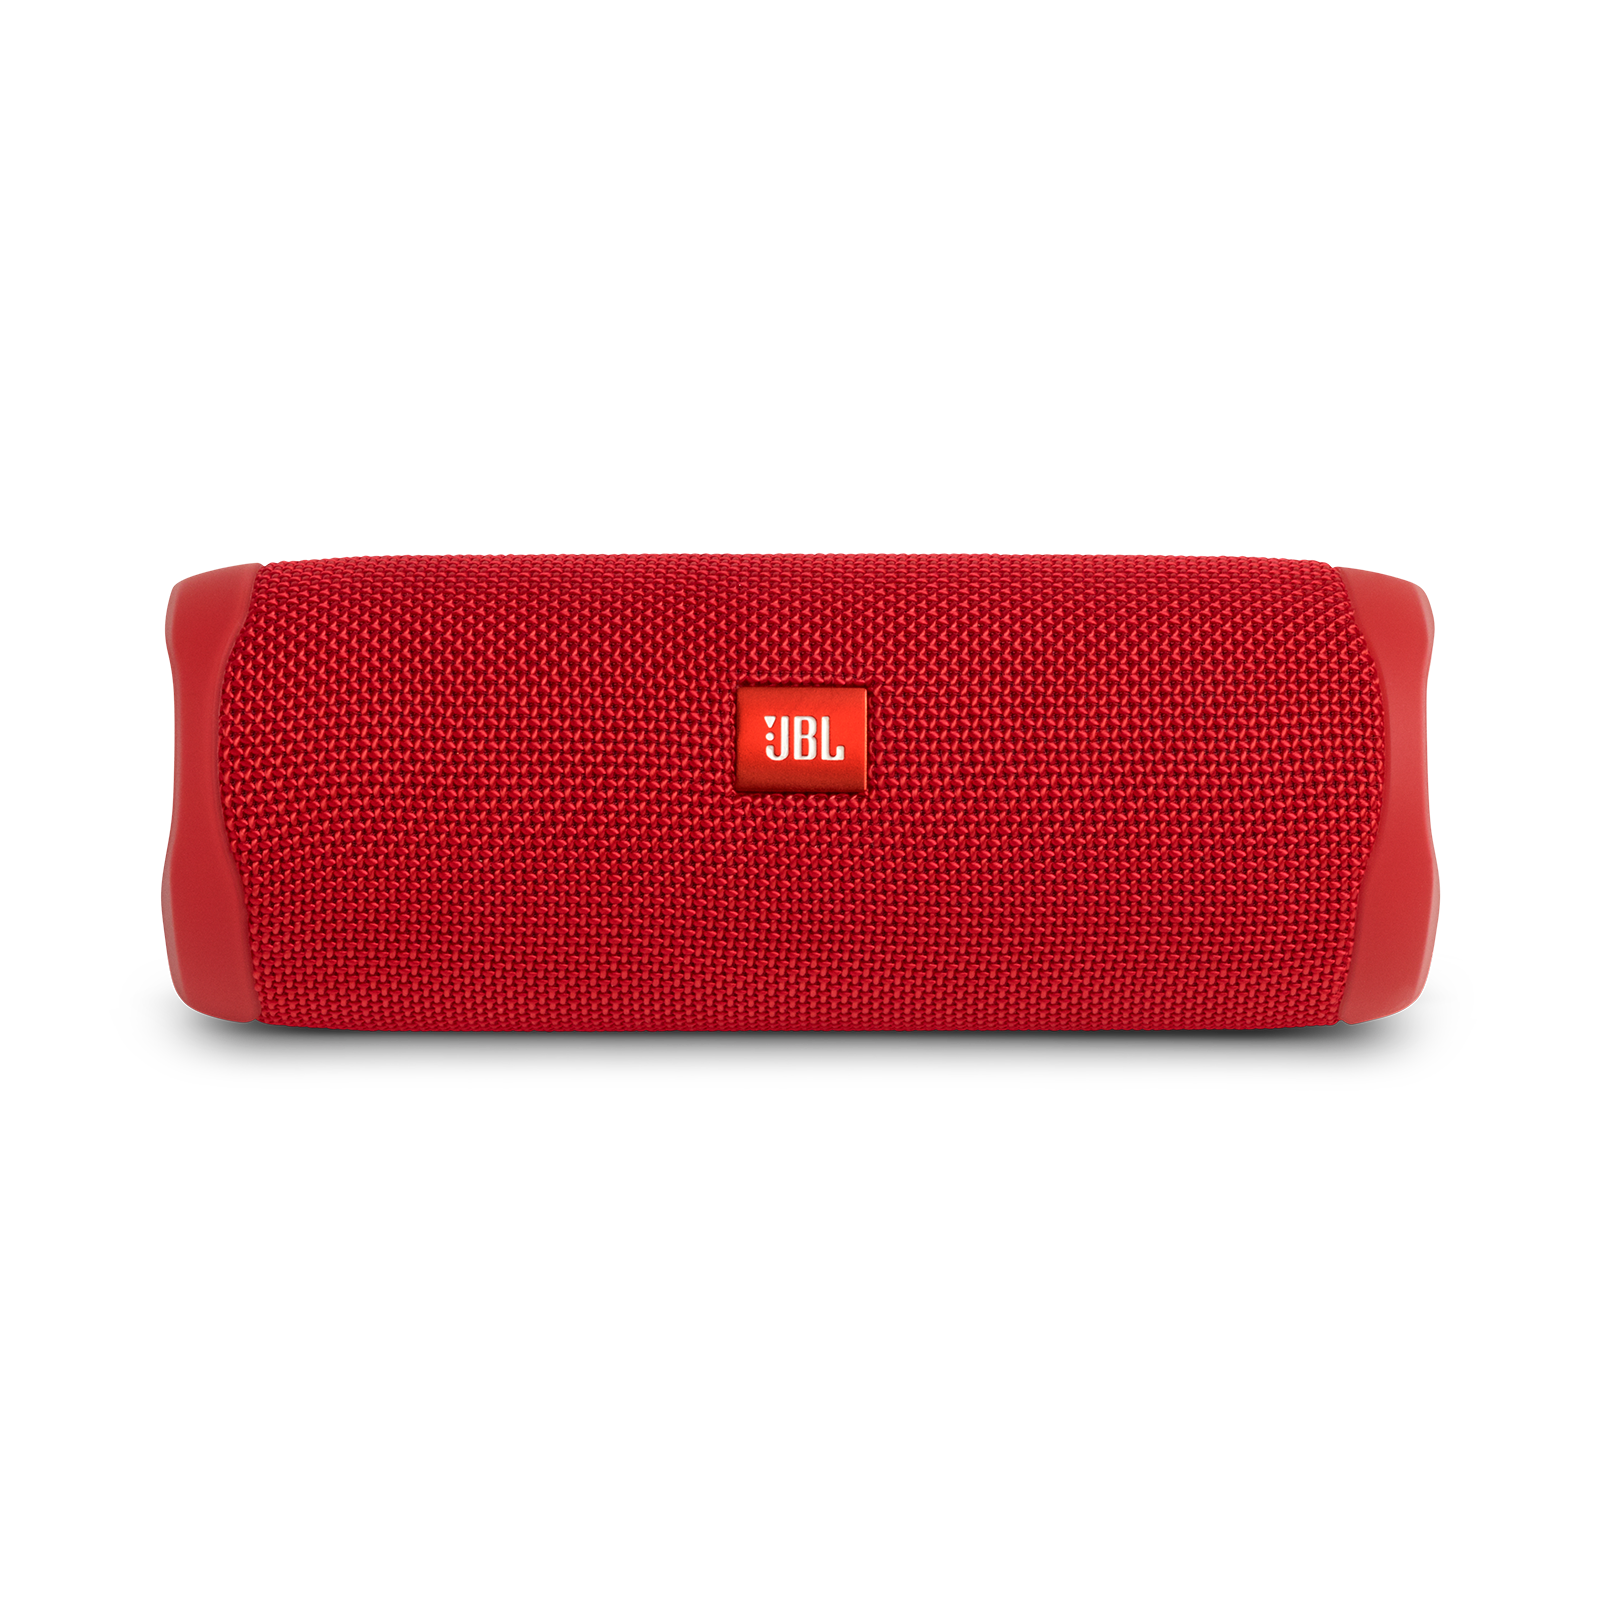 JBL FLIP 5 - Red - Portable Waterproof Speaker - Front